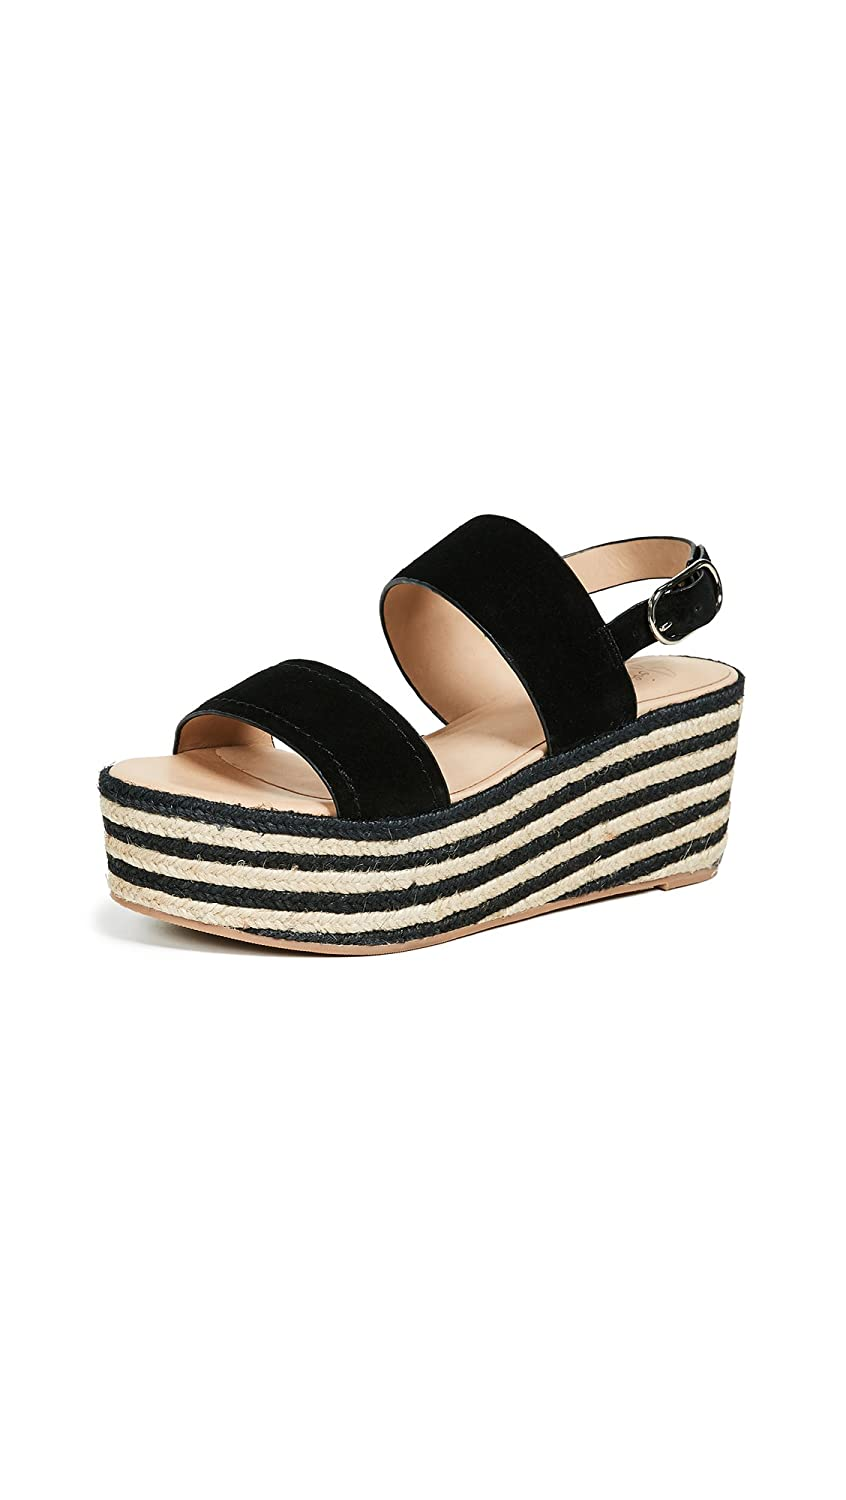 Joie Women's Galicia Espadrille Wedge Sandal B0792N8RYY 41 Regular EU (11 US)|Nero